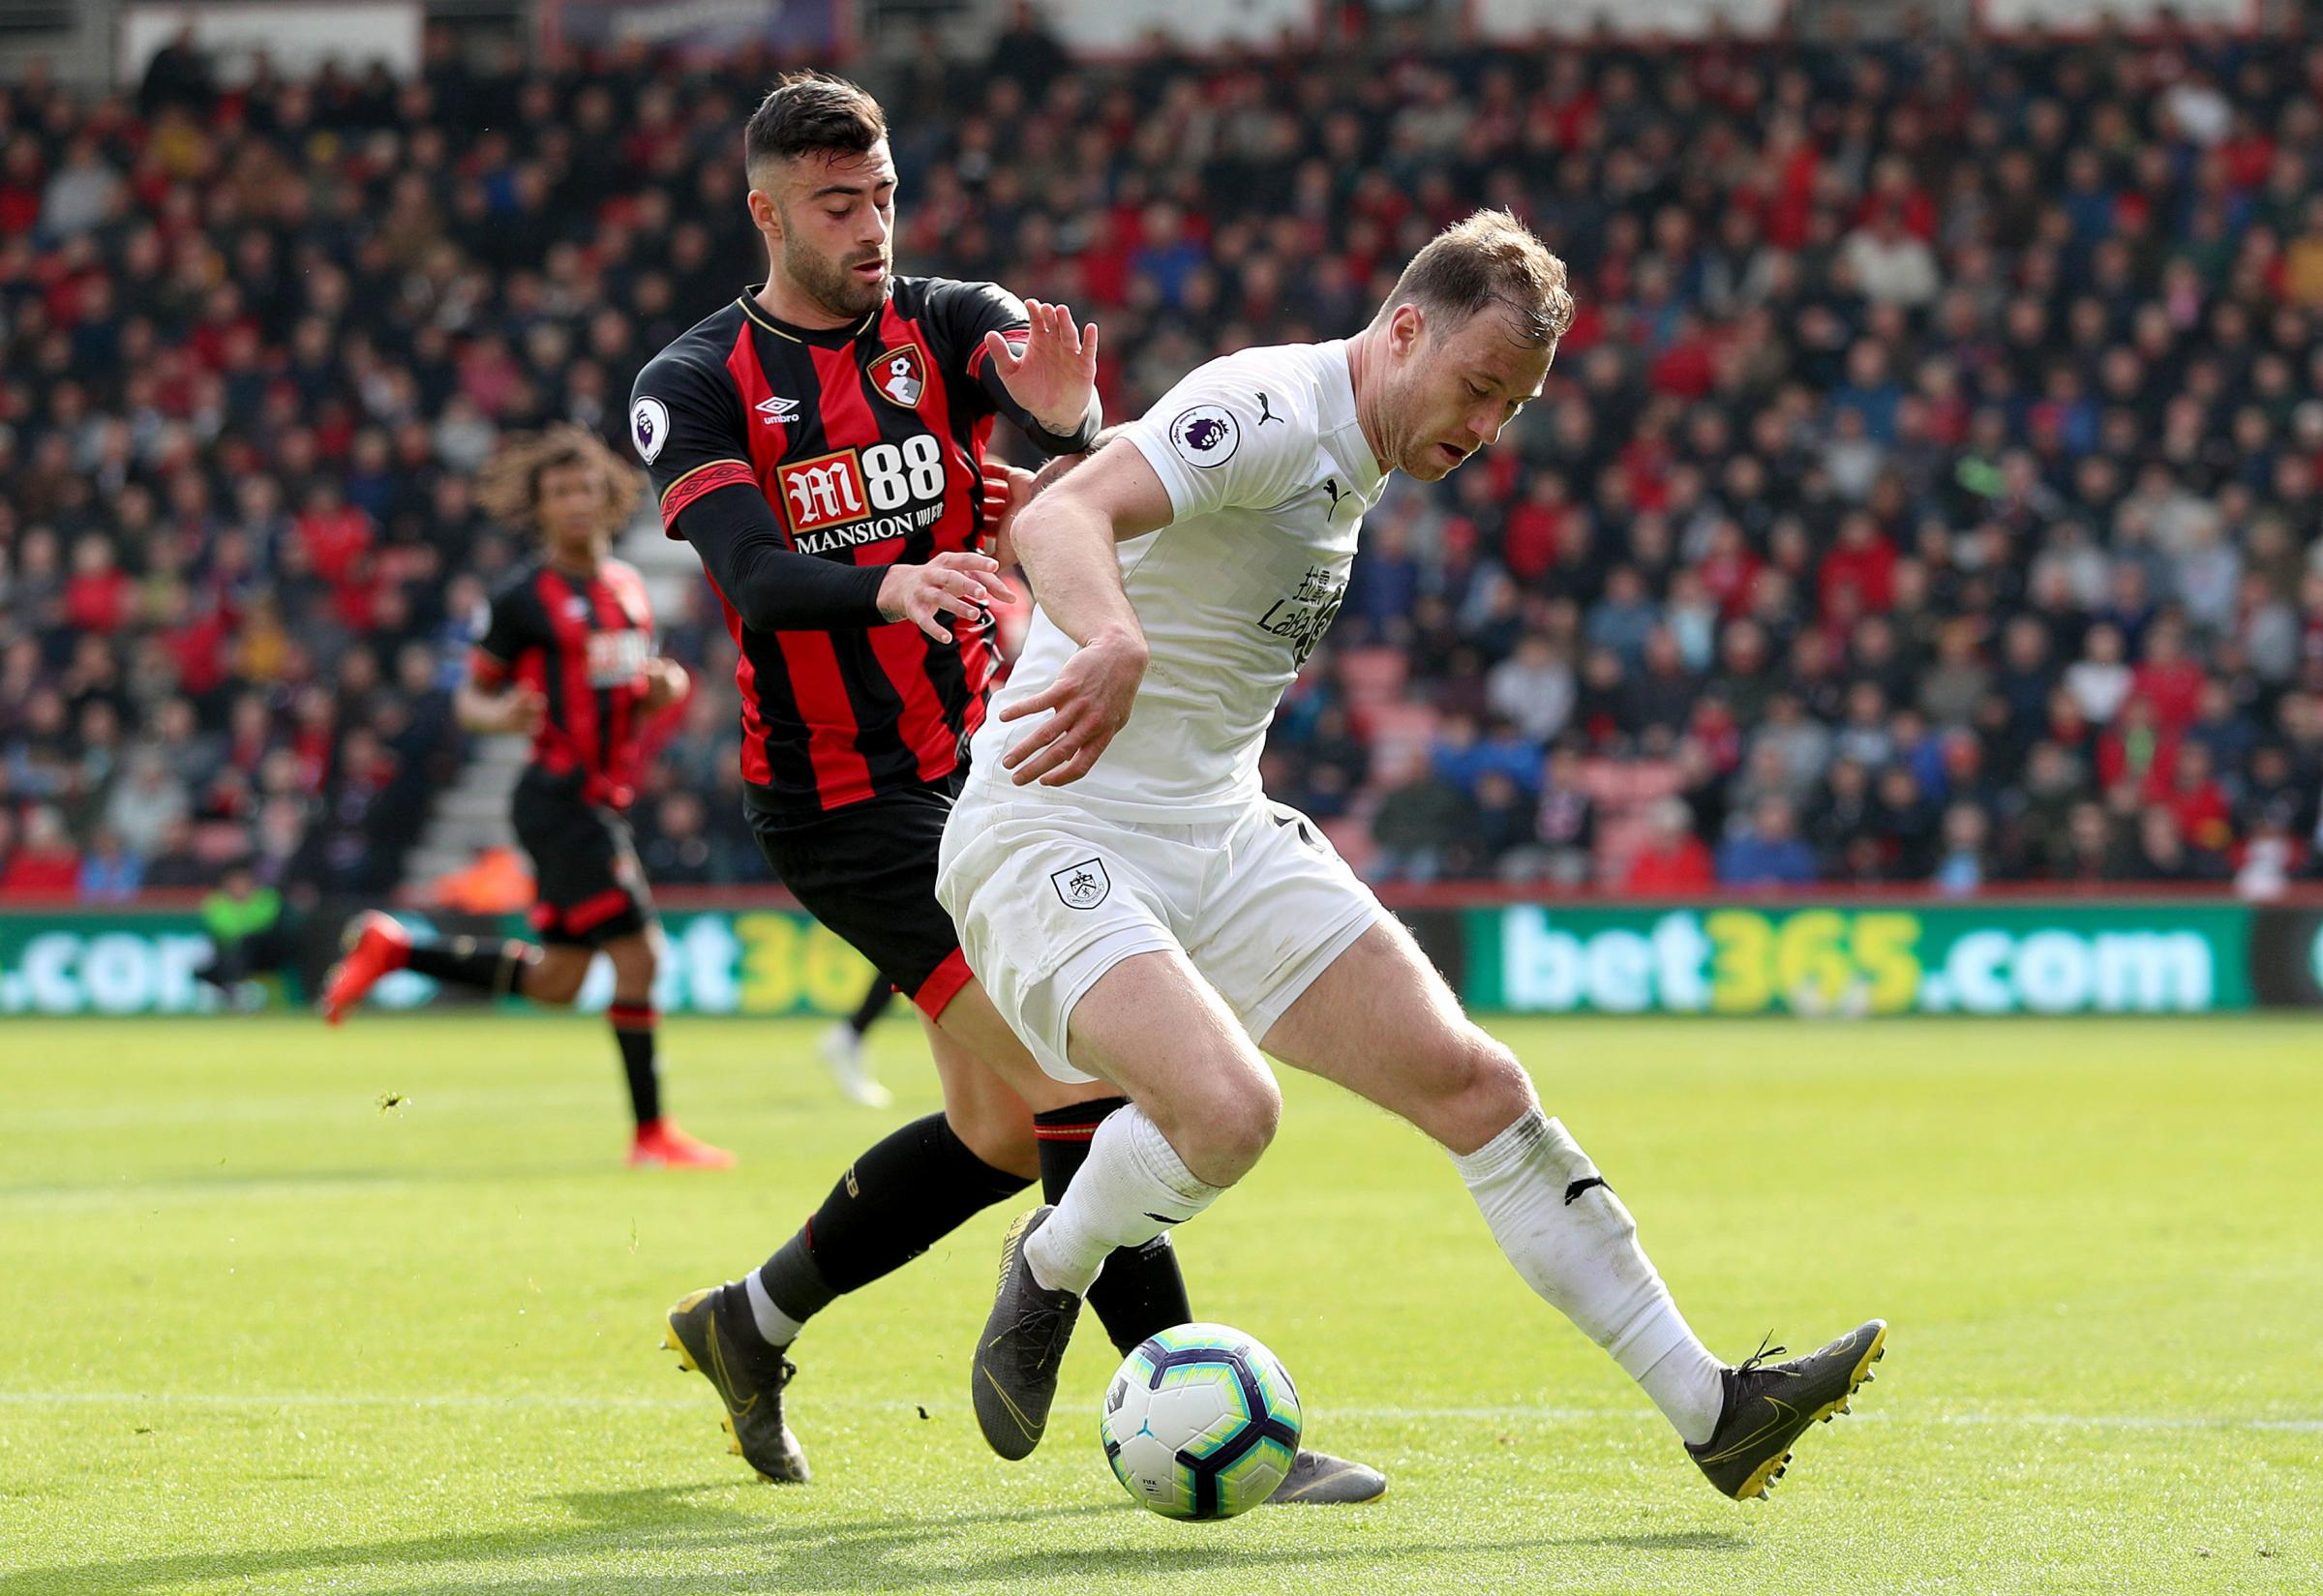 Eddie Howe insists AFC Bournemouth left-back Diego Rico has the ability to play in the Premier League